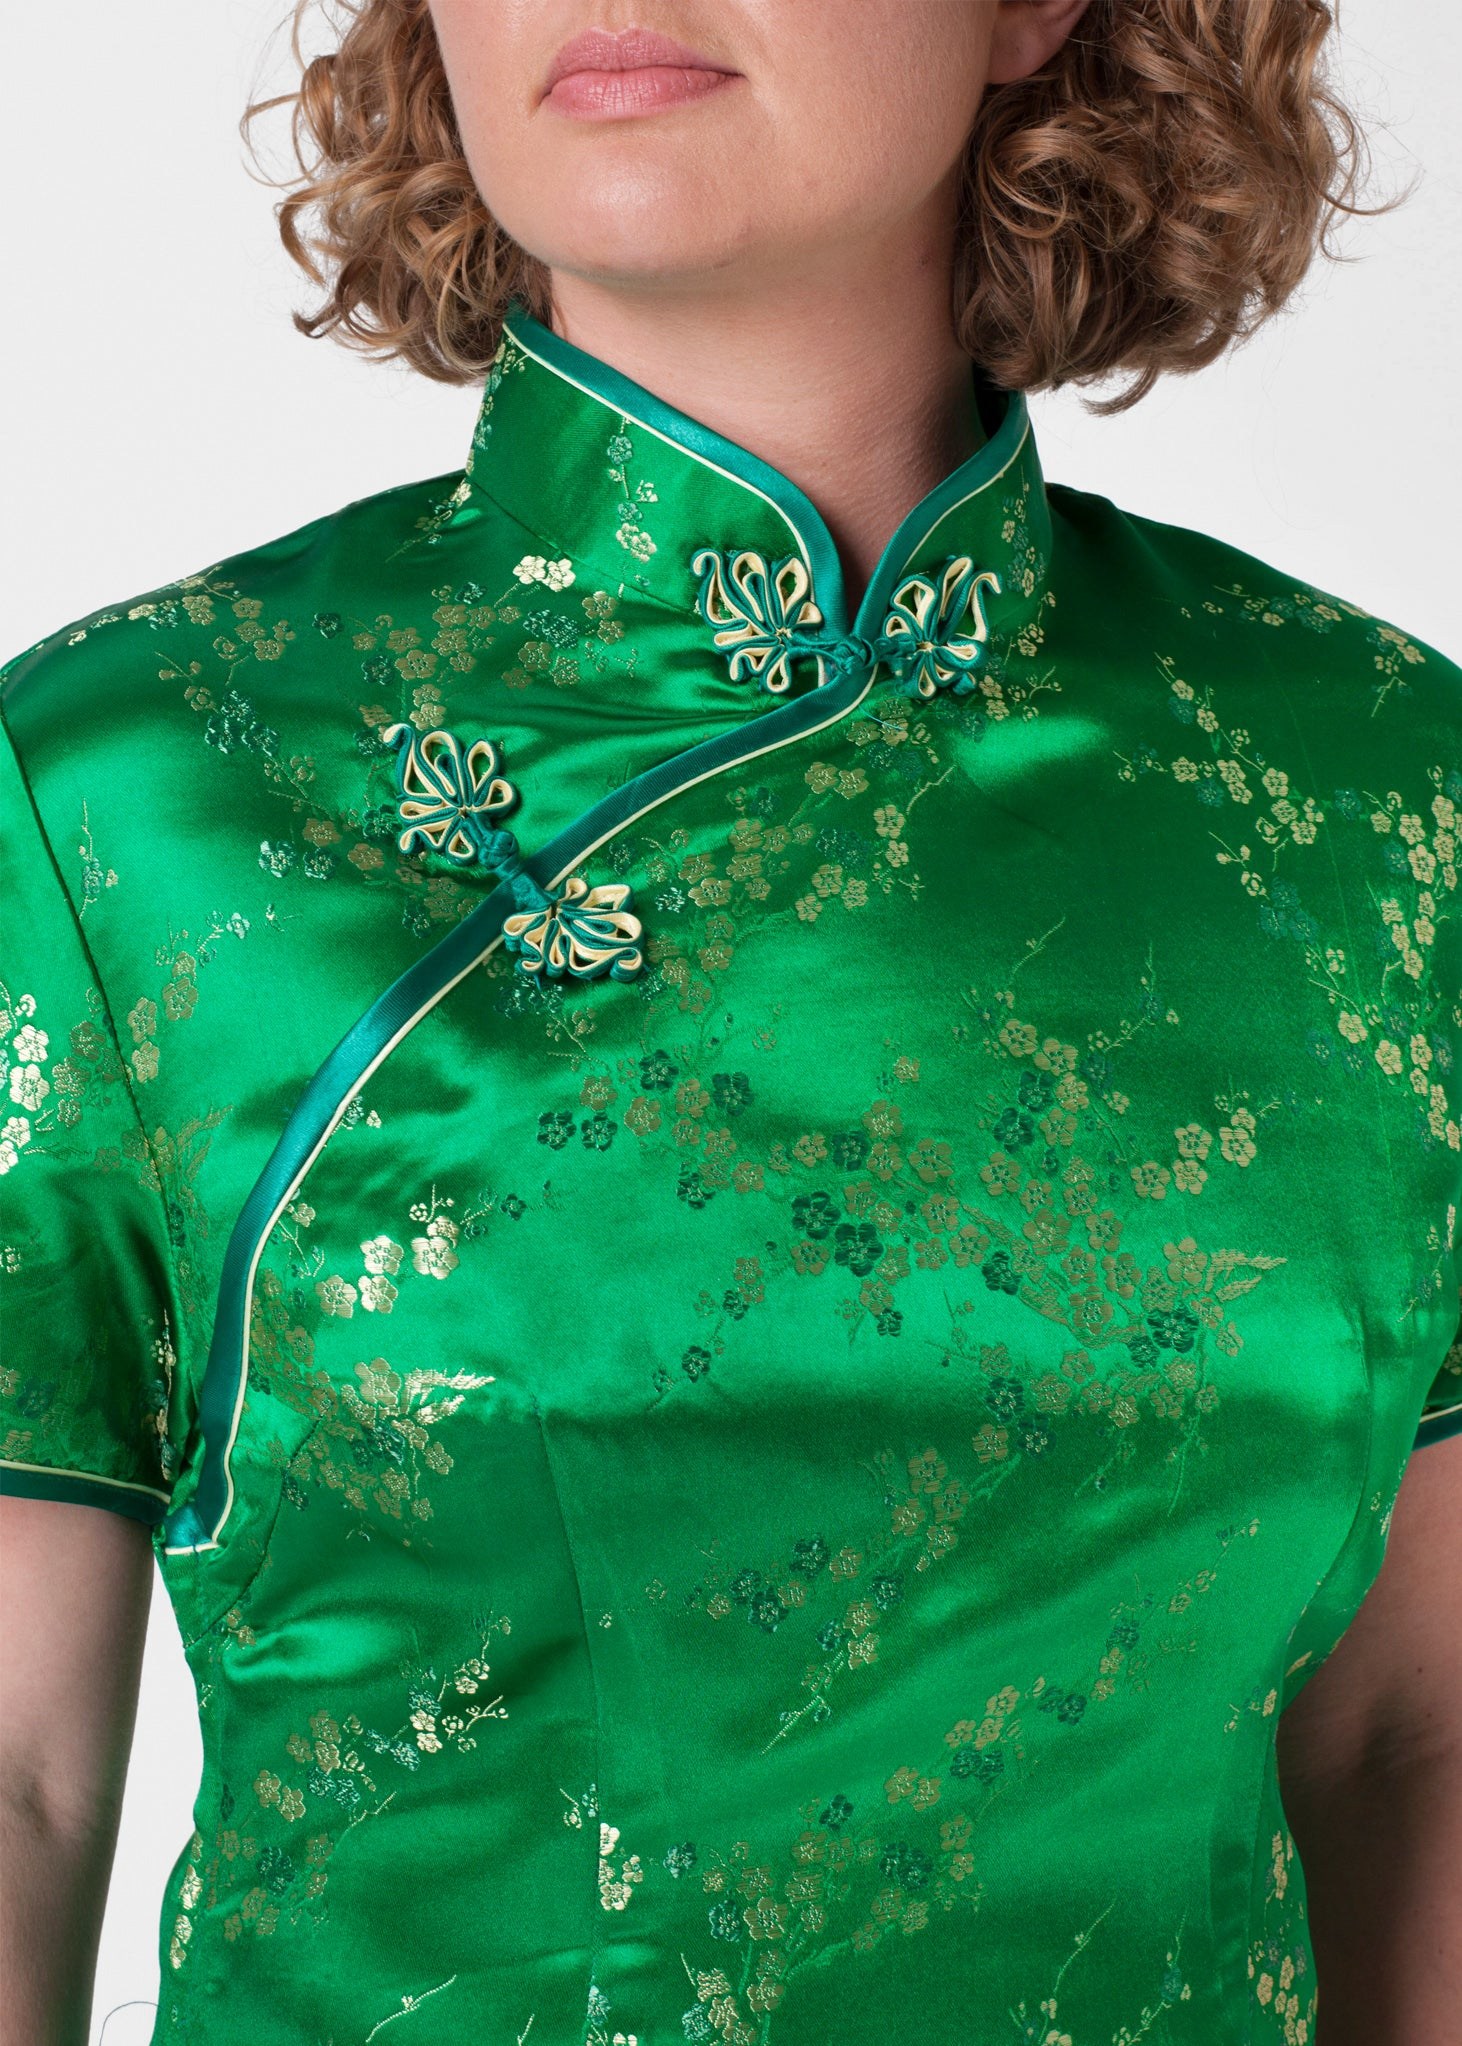 Bound edge mandarin collar and aysmmetric fastening which closes with hand stitched flower and knot frog fastenings in an accent shade. Open ended side zip and press studs